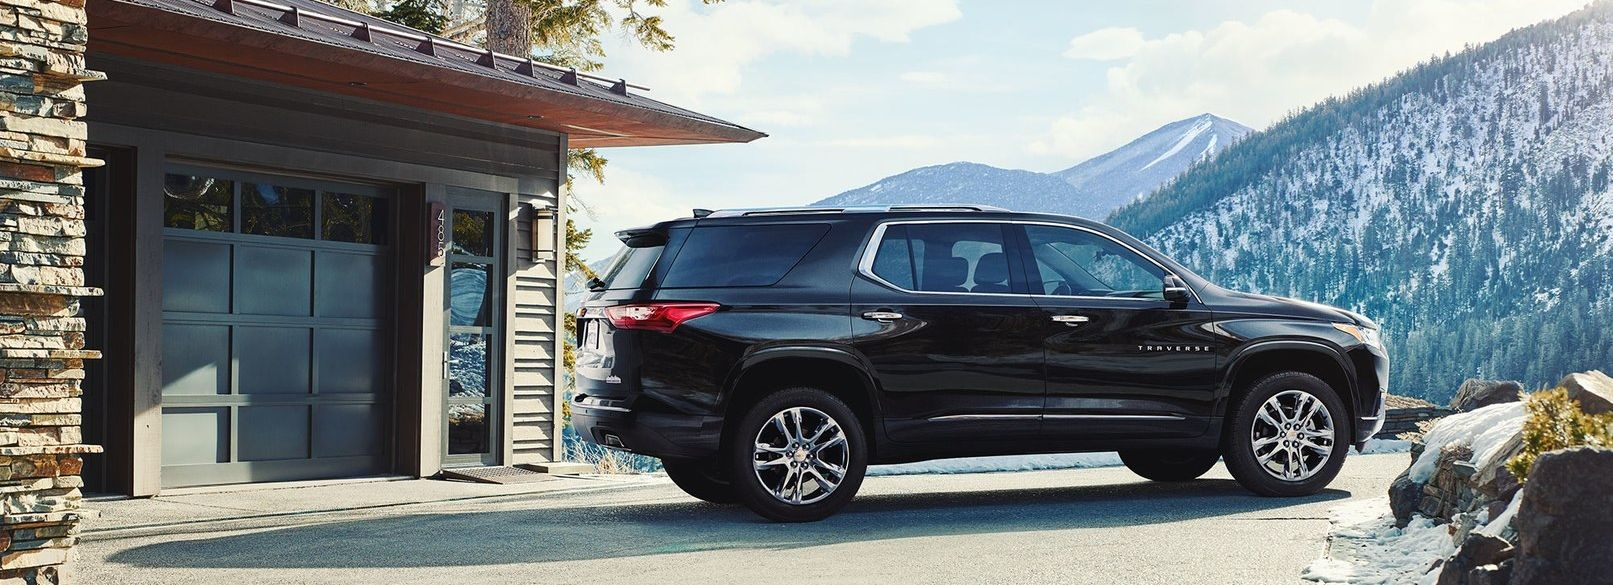 2019 Chevrolet Traverse for Sale near Schererville, IN